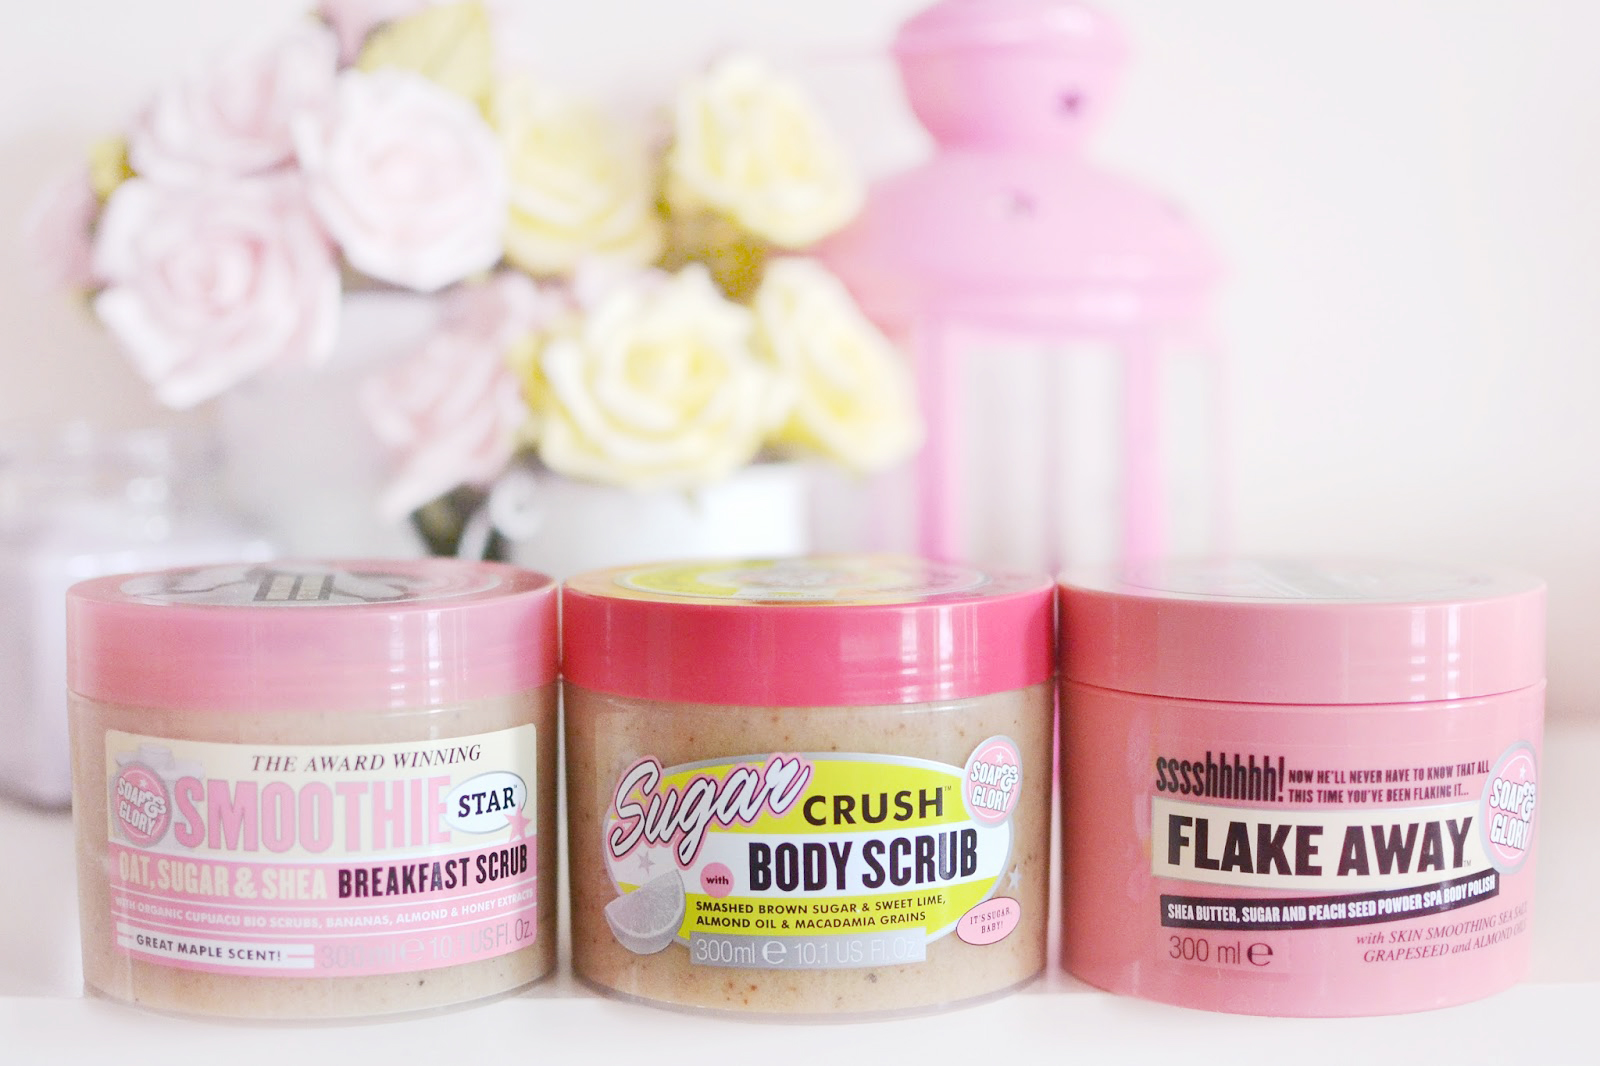 The best soap&glory body scrubs, sugar crush review, breakfast scrub review, flake away review